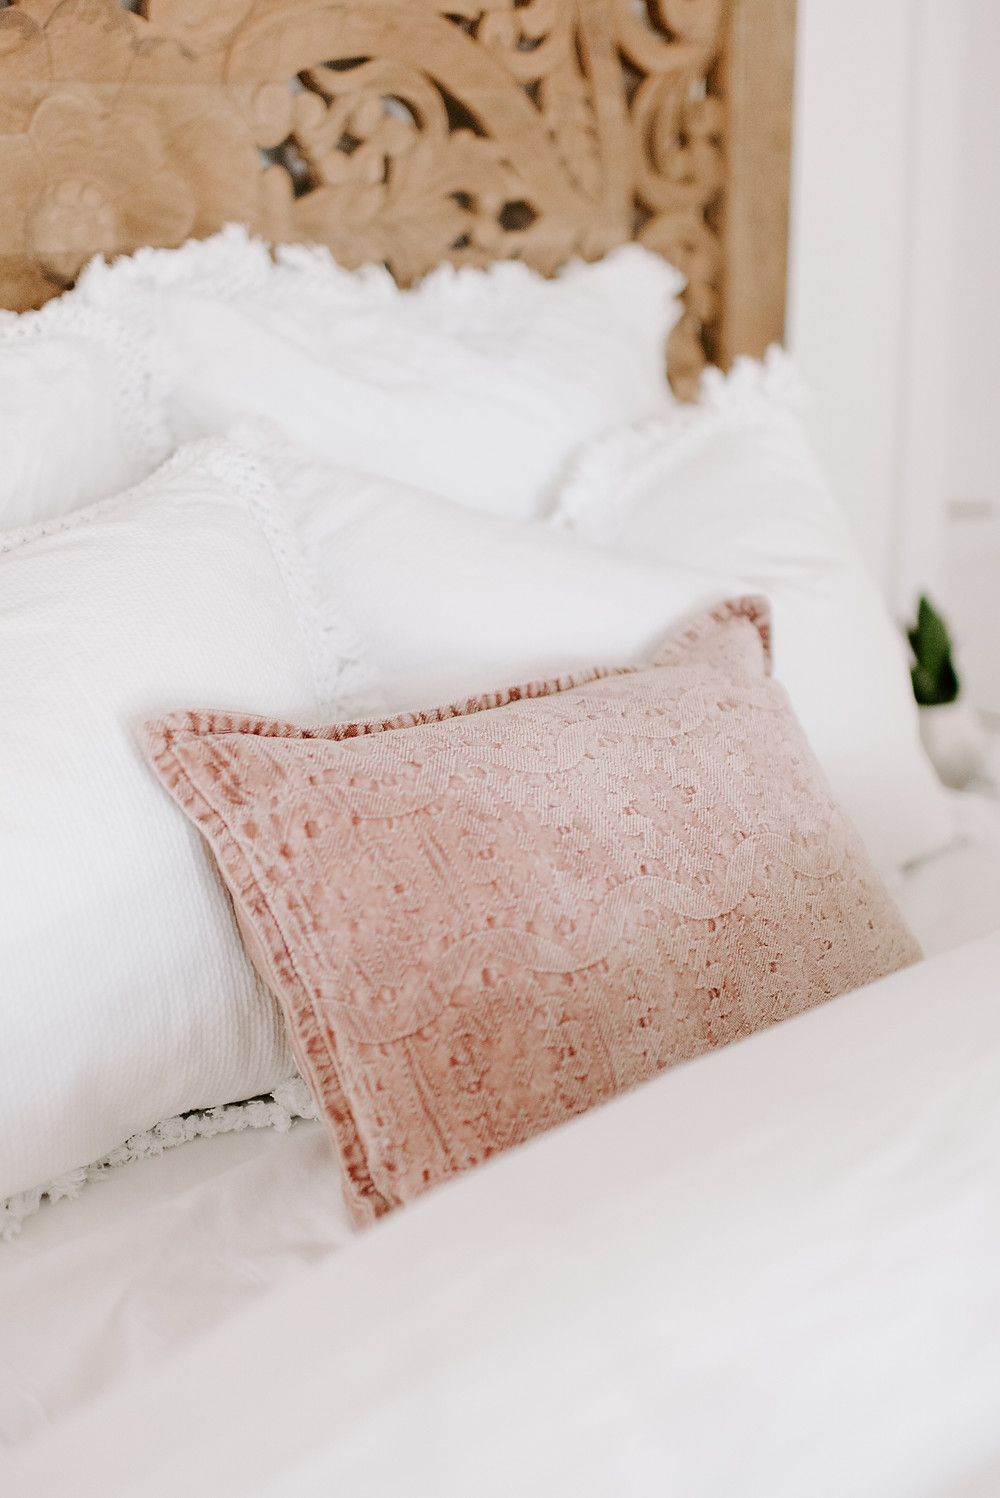 Declutter and organise your bedroom to improve your love life.